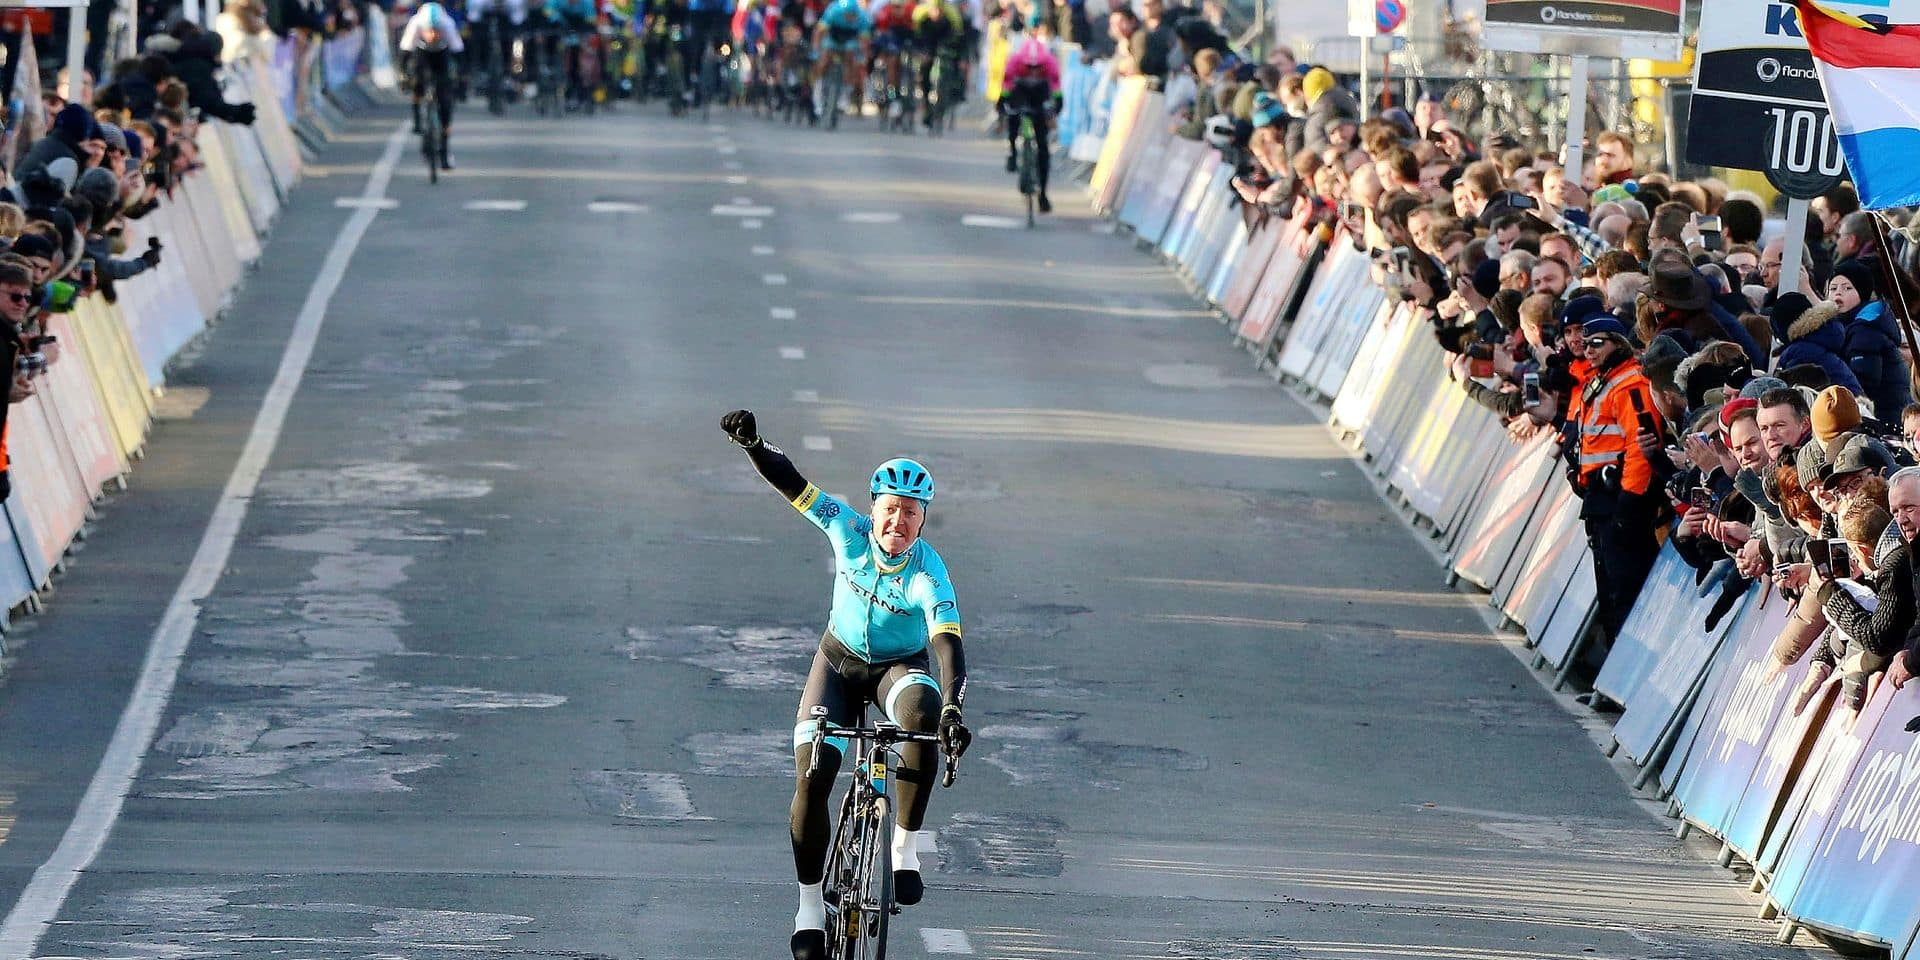 Denmark's Michael Valgren Andersen from the Astana team raises his fist as he crosses the finish line to take first place in the Omloop Het Nieuwsblad in Ninove, Belgium on Saturday, Feb. 24, 2018. (AP Photo/Francois Walschaerts)